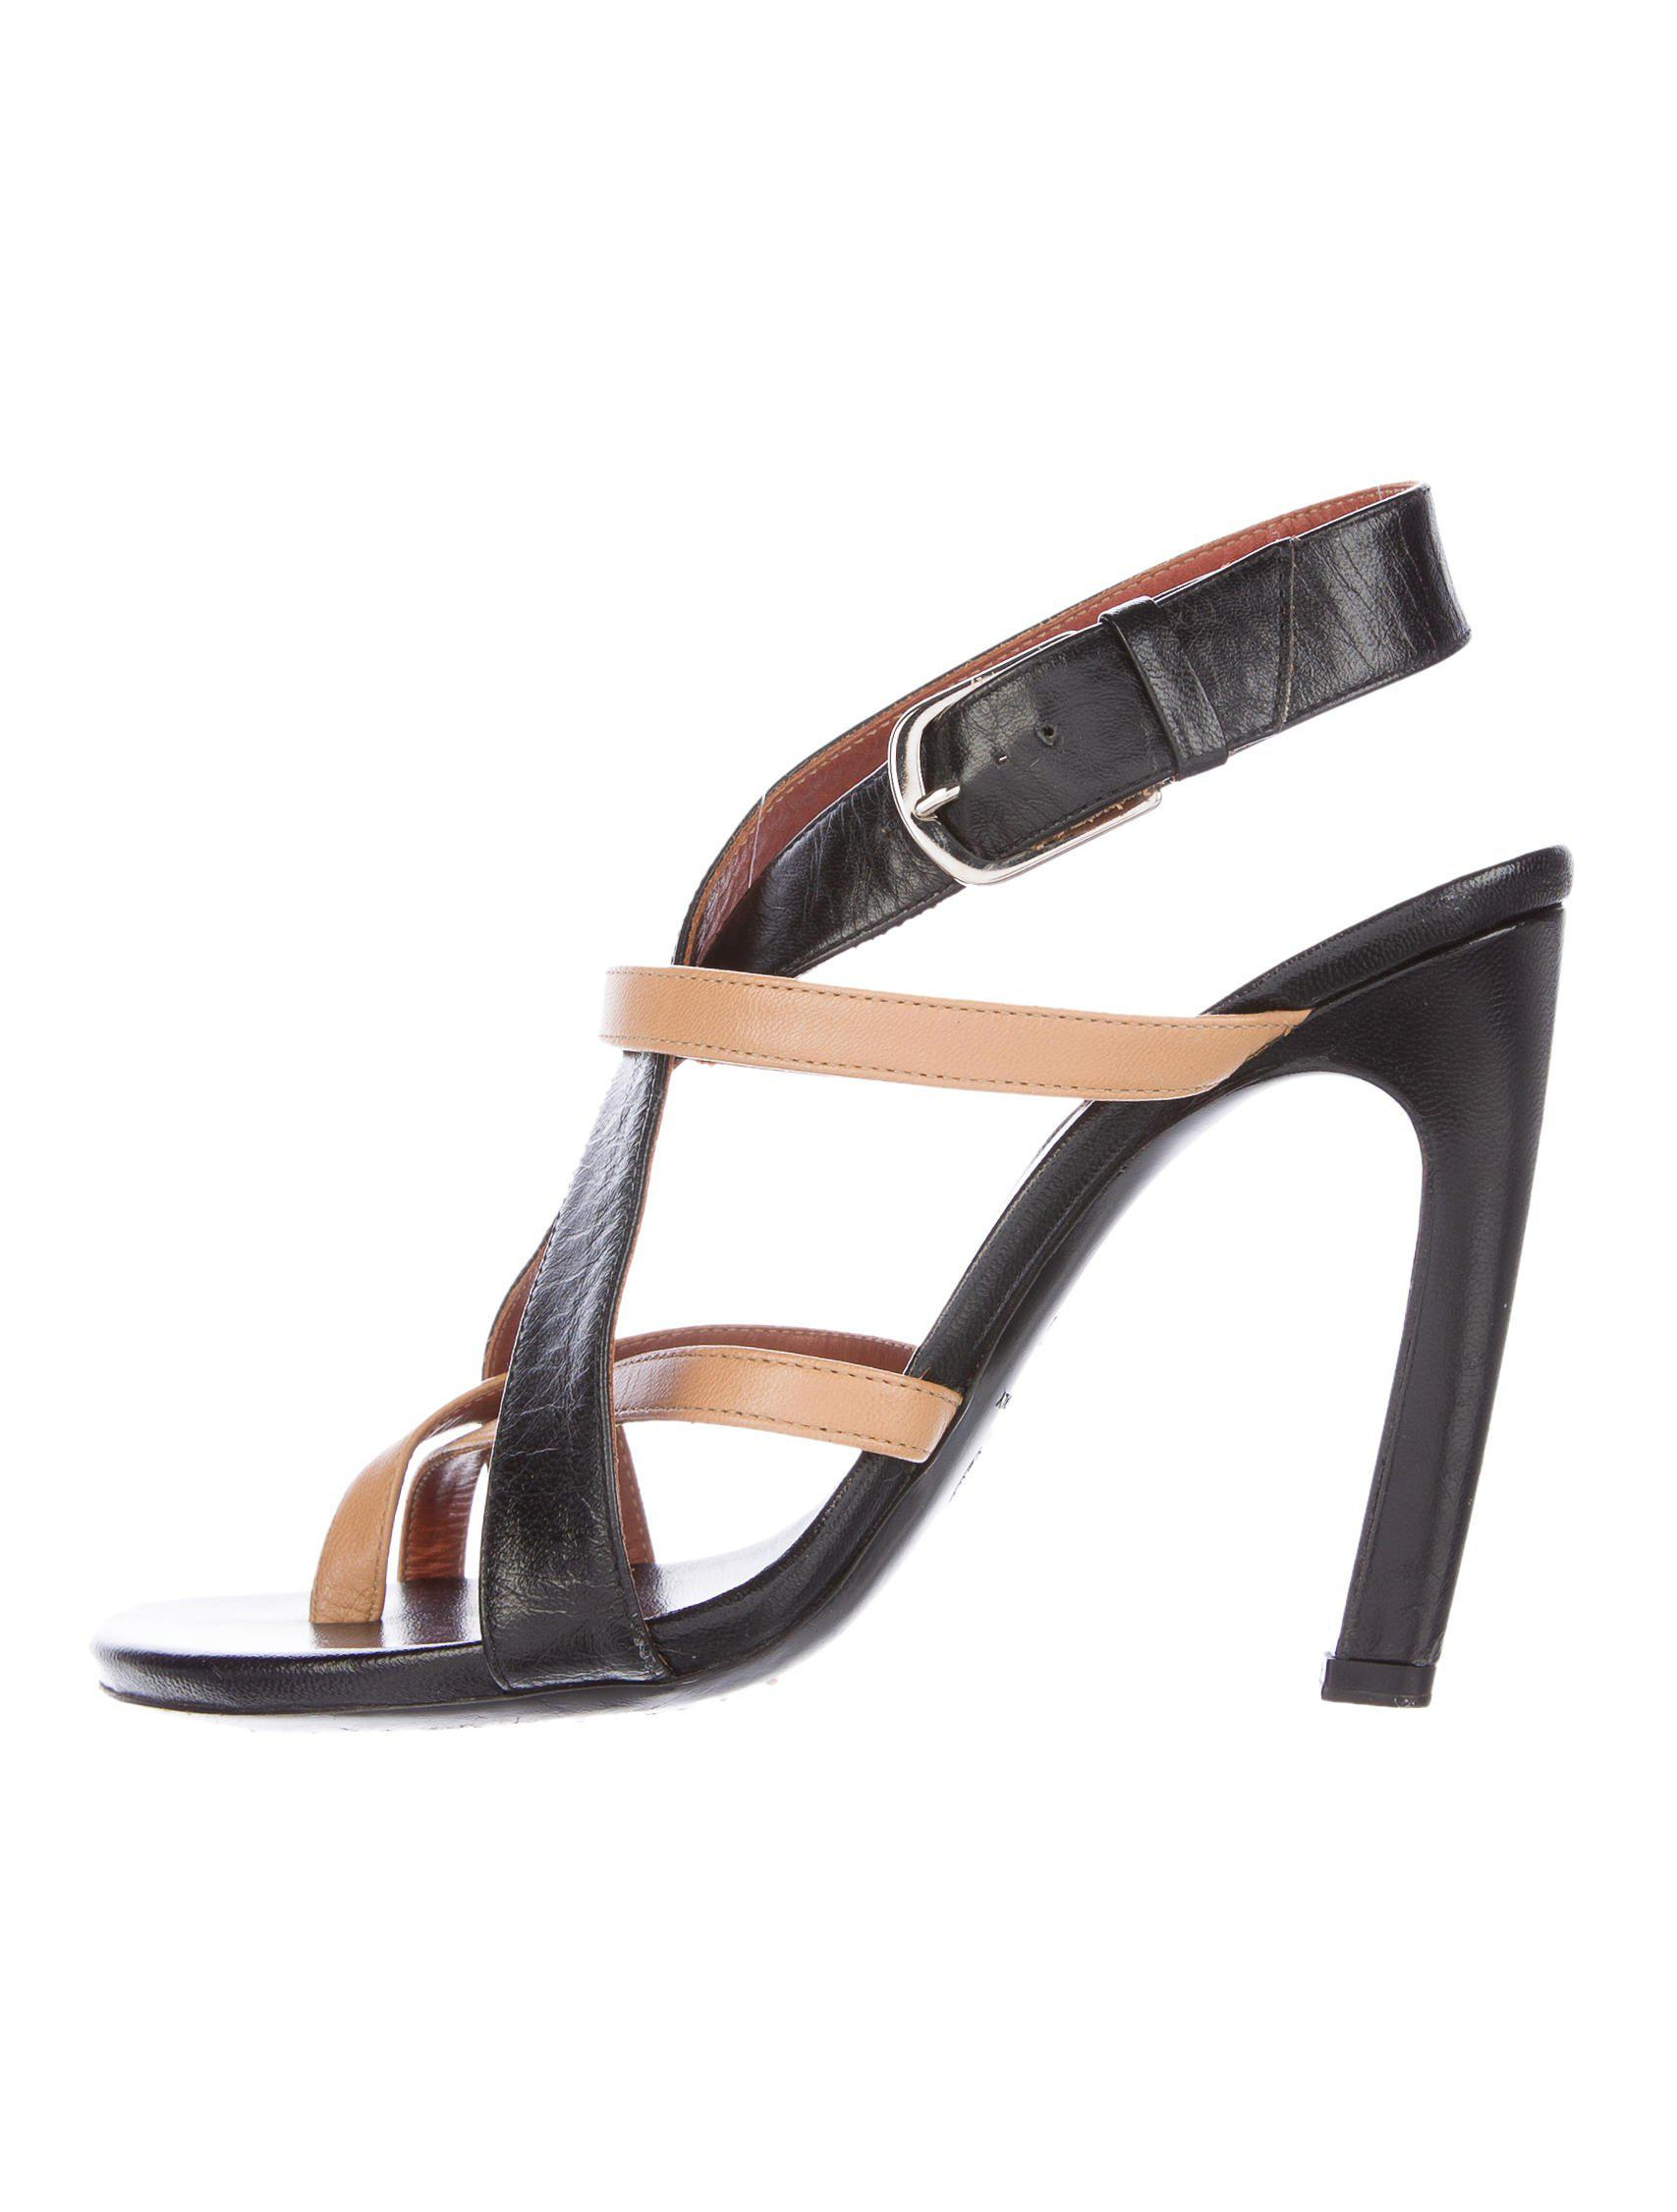 d0ce6a11c2 Lyst - Dries Van Noten Leather Crossover Sandals Black in Metallic